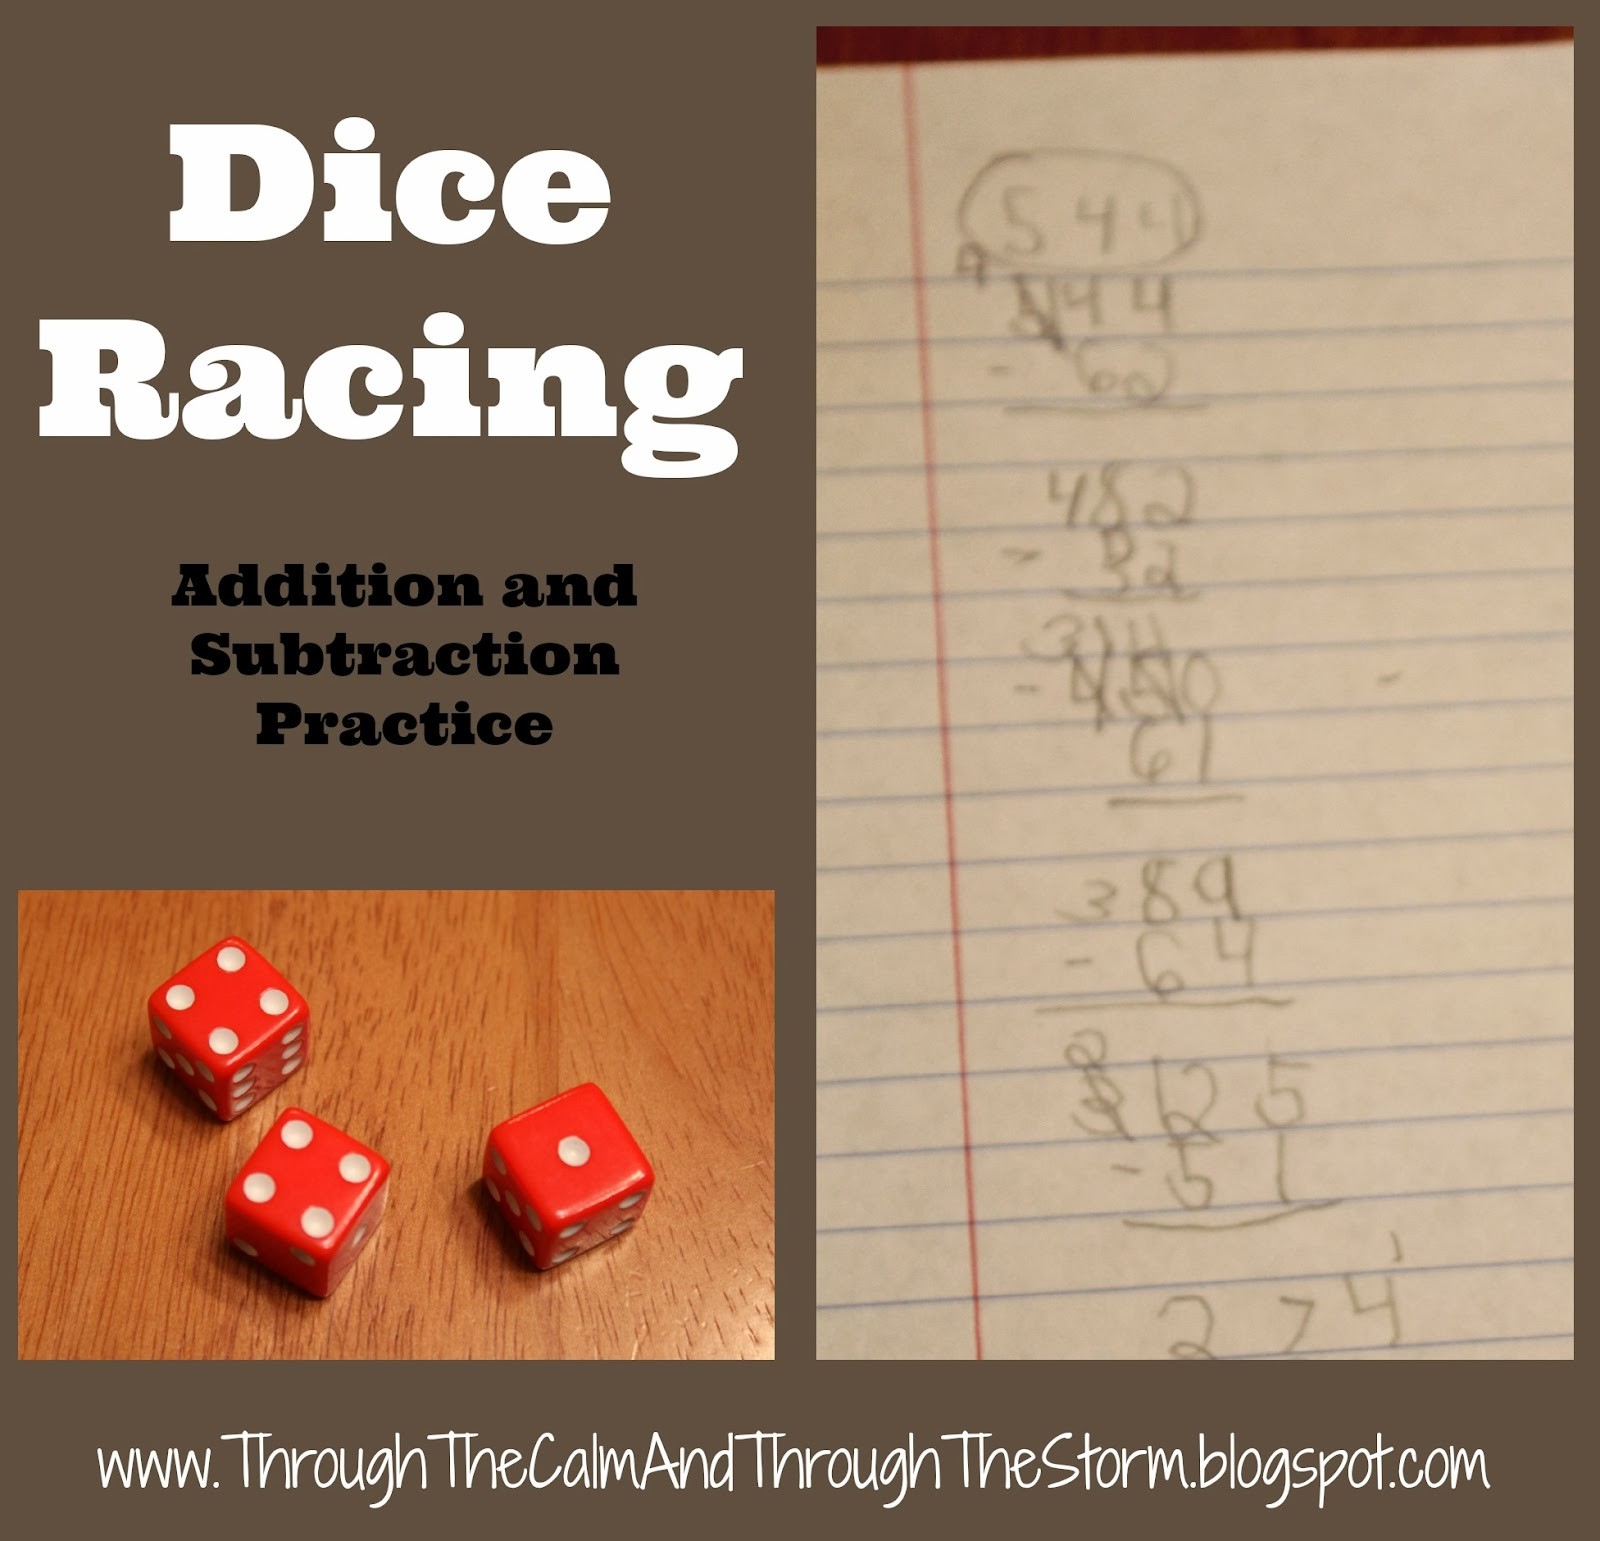 Through The Calm And Through The Storm Dice Racing Addition Subtraction Practice